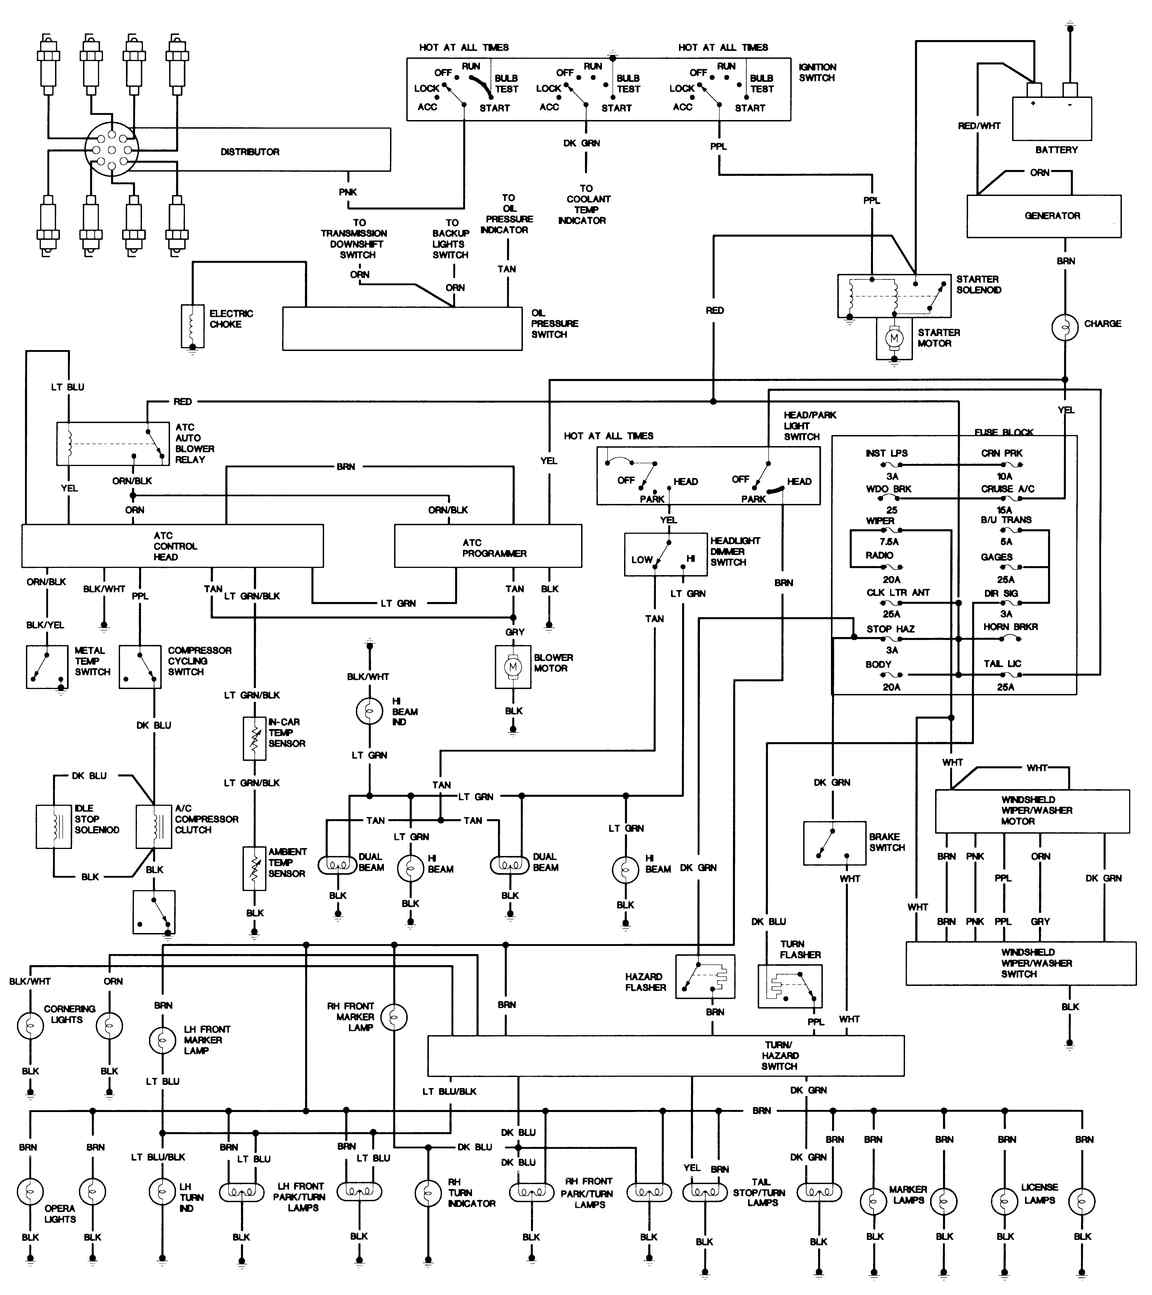 2002 Cadillac Deville A C Clutch Wiring Diagram List Of Schematic 1998 Compressor Looking For Diagrams From Rh Justanswer Com